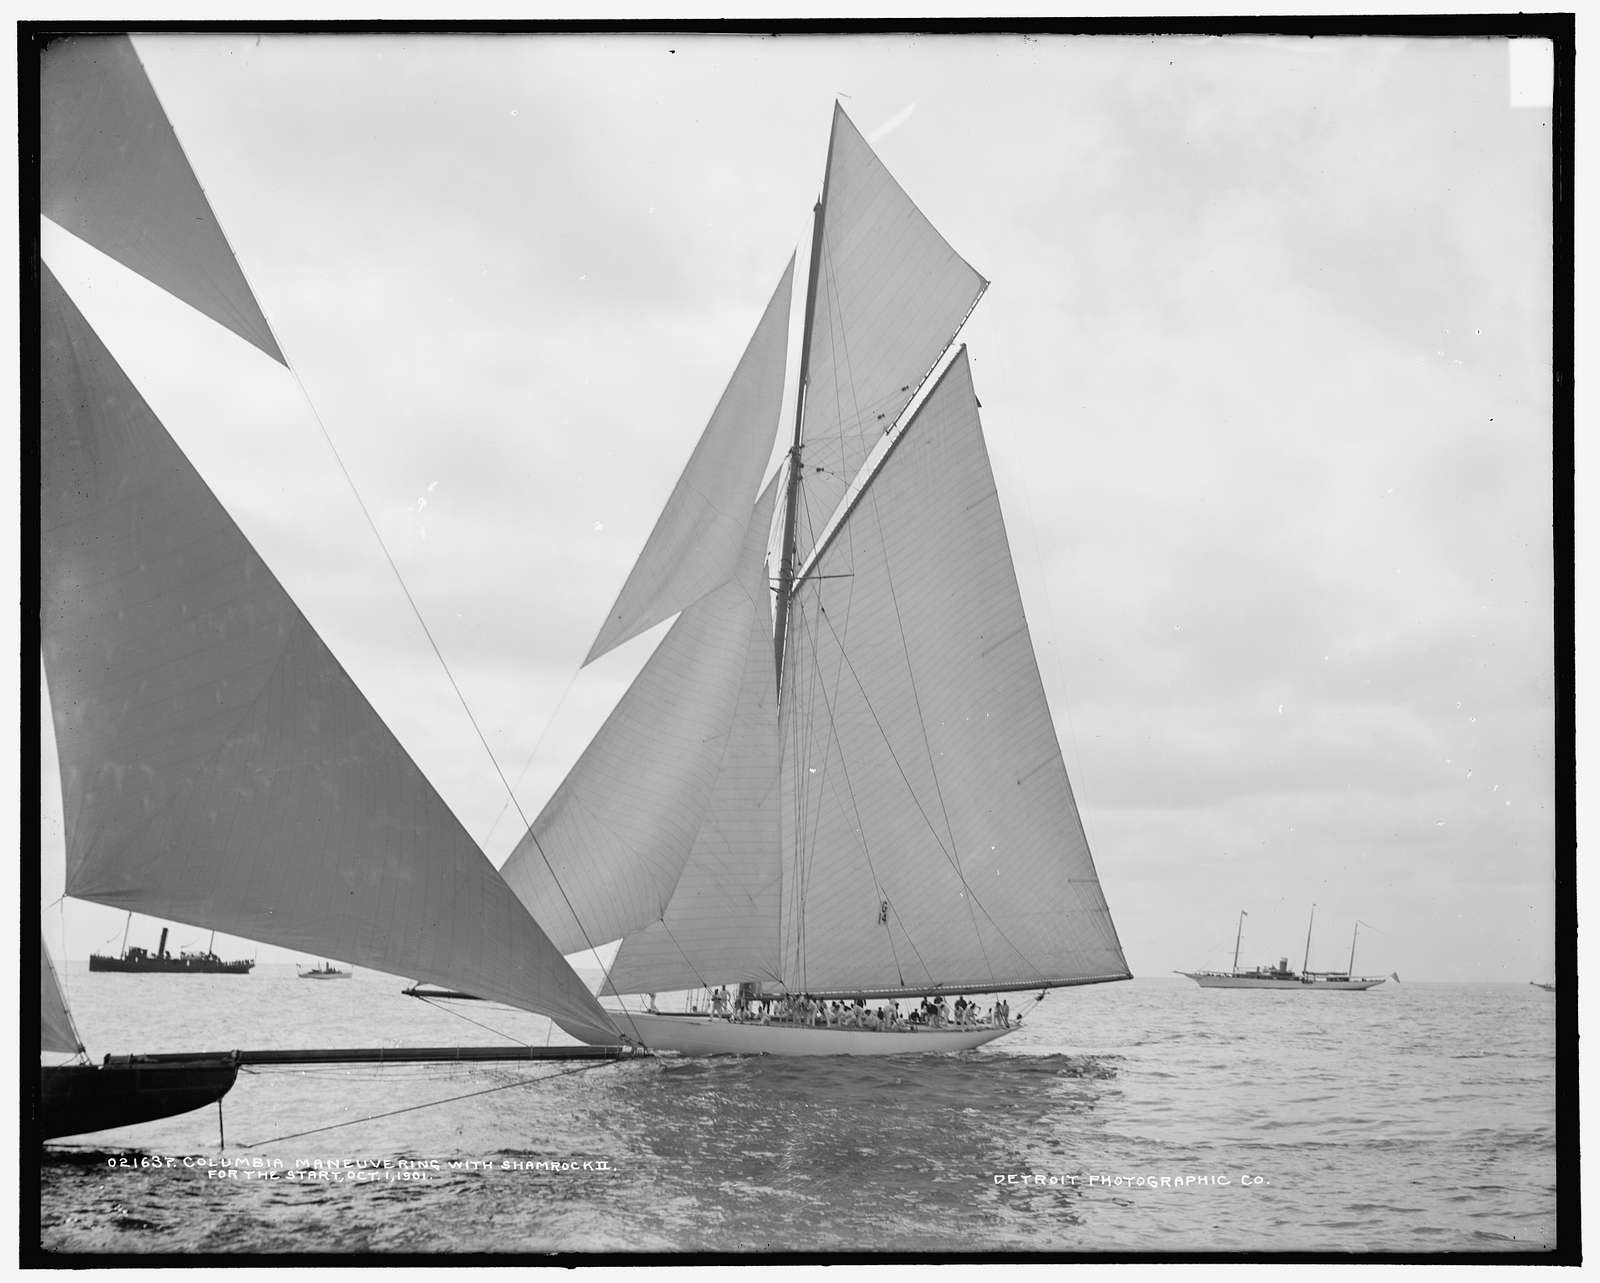 Columbia maneuvering for the start with Shamrock II